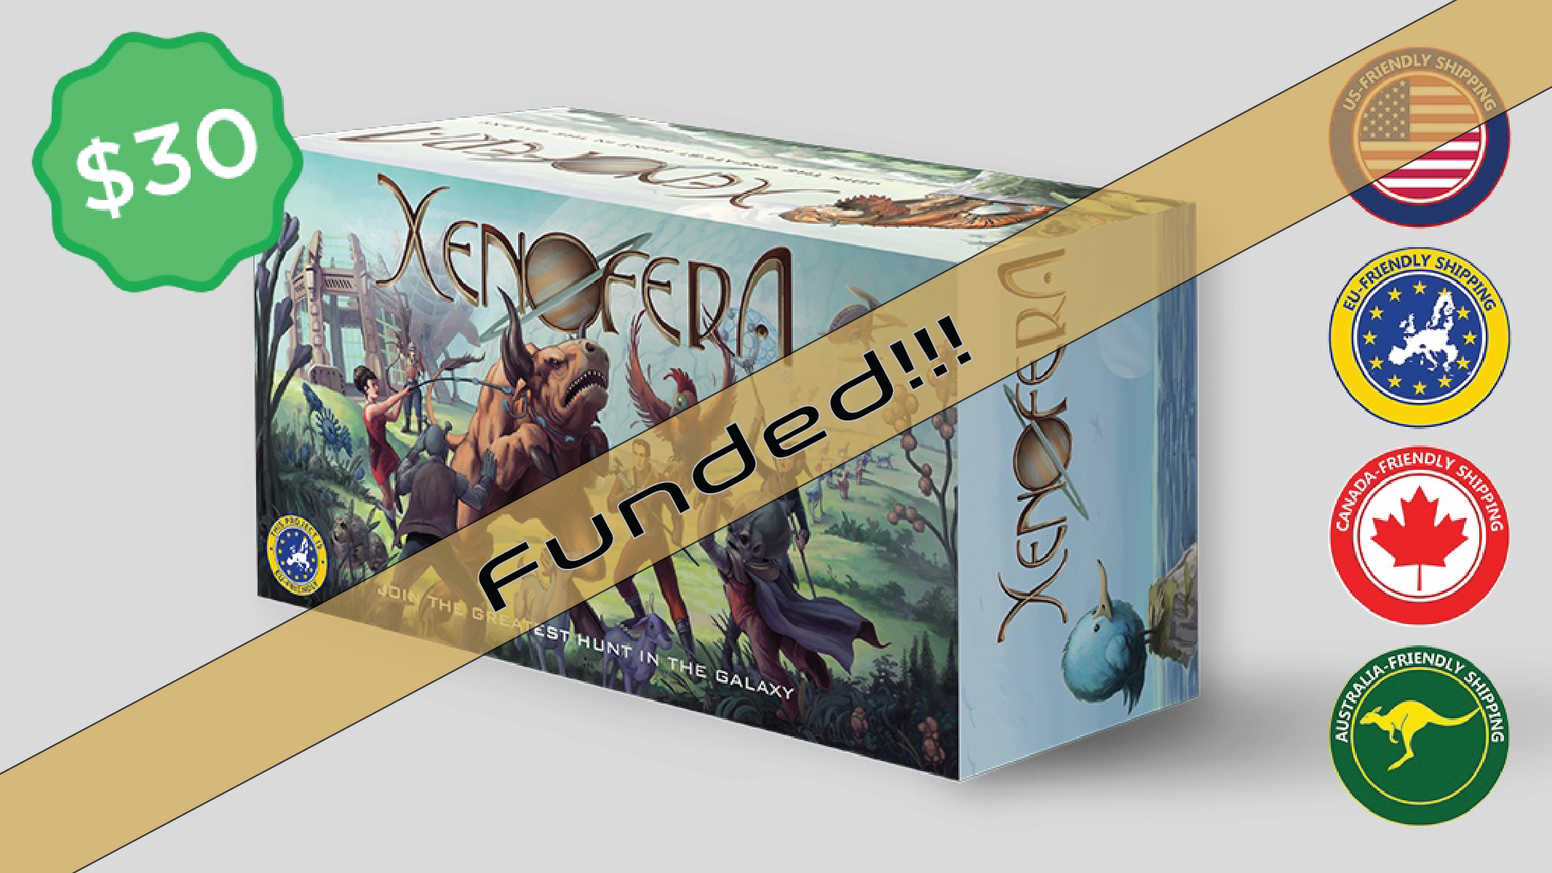 Want to get in on the next Hunt?  Orders are now being accepted on Xenofera.com.